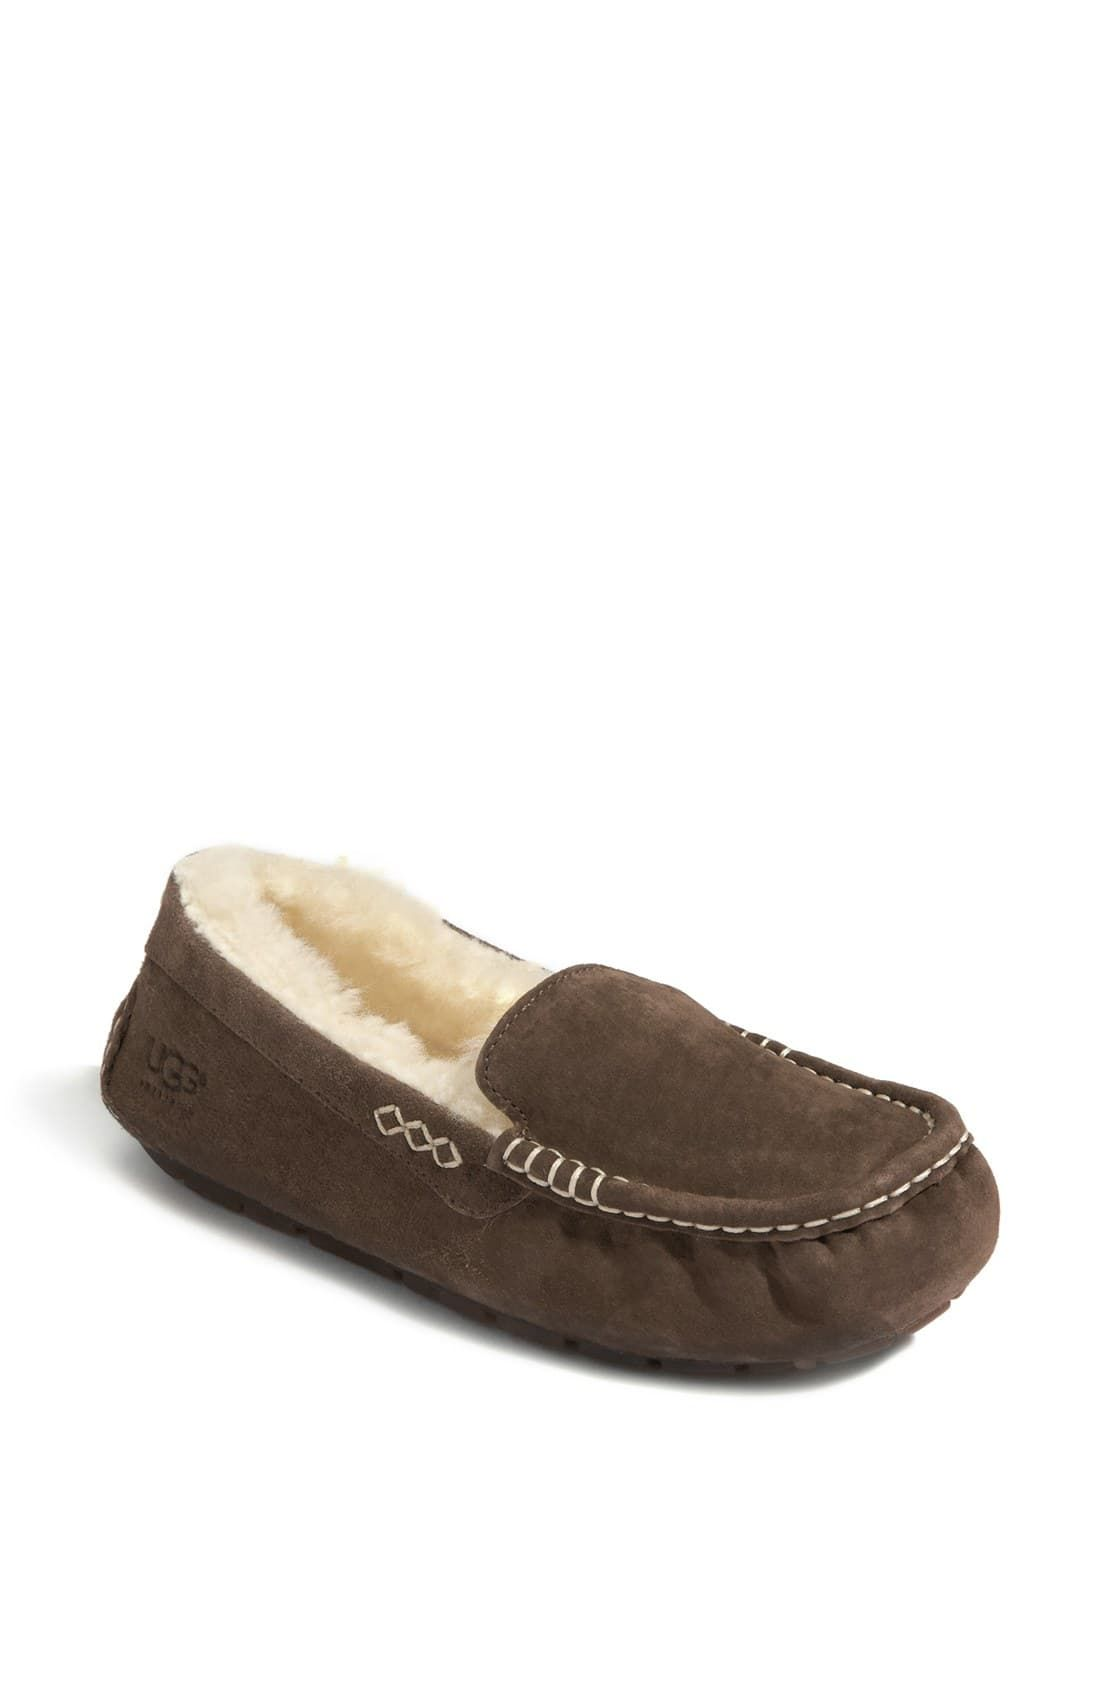 2f7d2196405 UGG Ansley Water Resistant Slipper in 2019 | Products | Womens ...